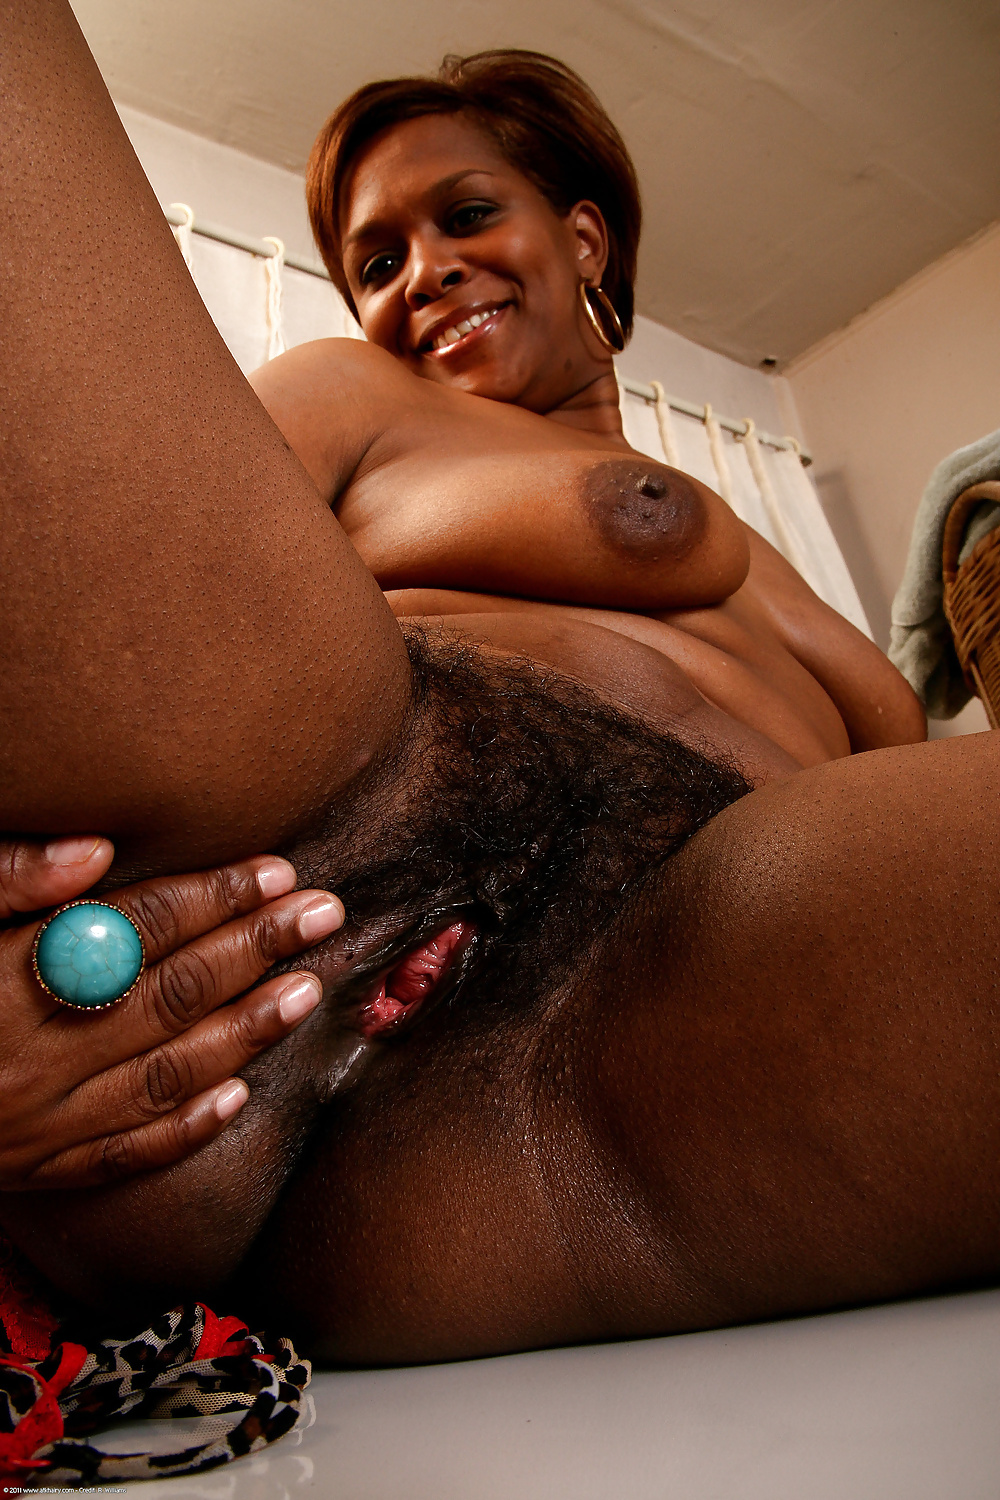 Black Women- Ebony Voyeur Panties - Hairy Pussies - 12 Pics - Xhamstercom-3323